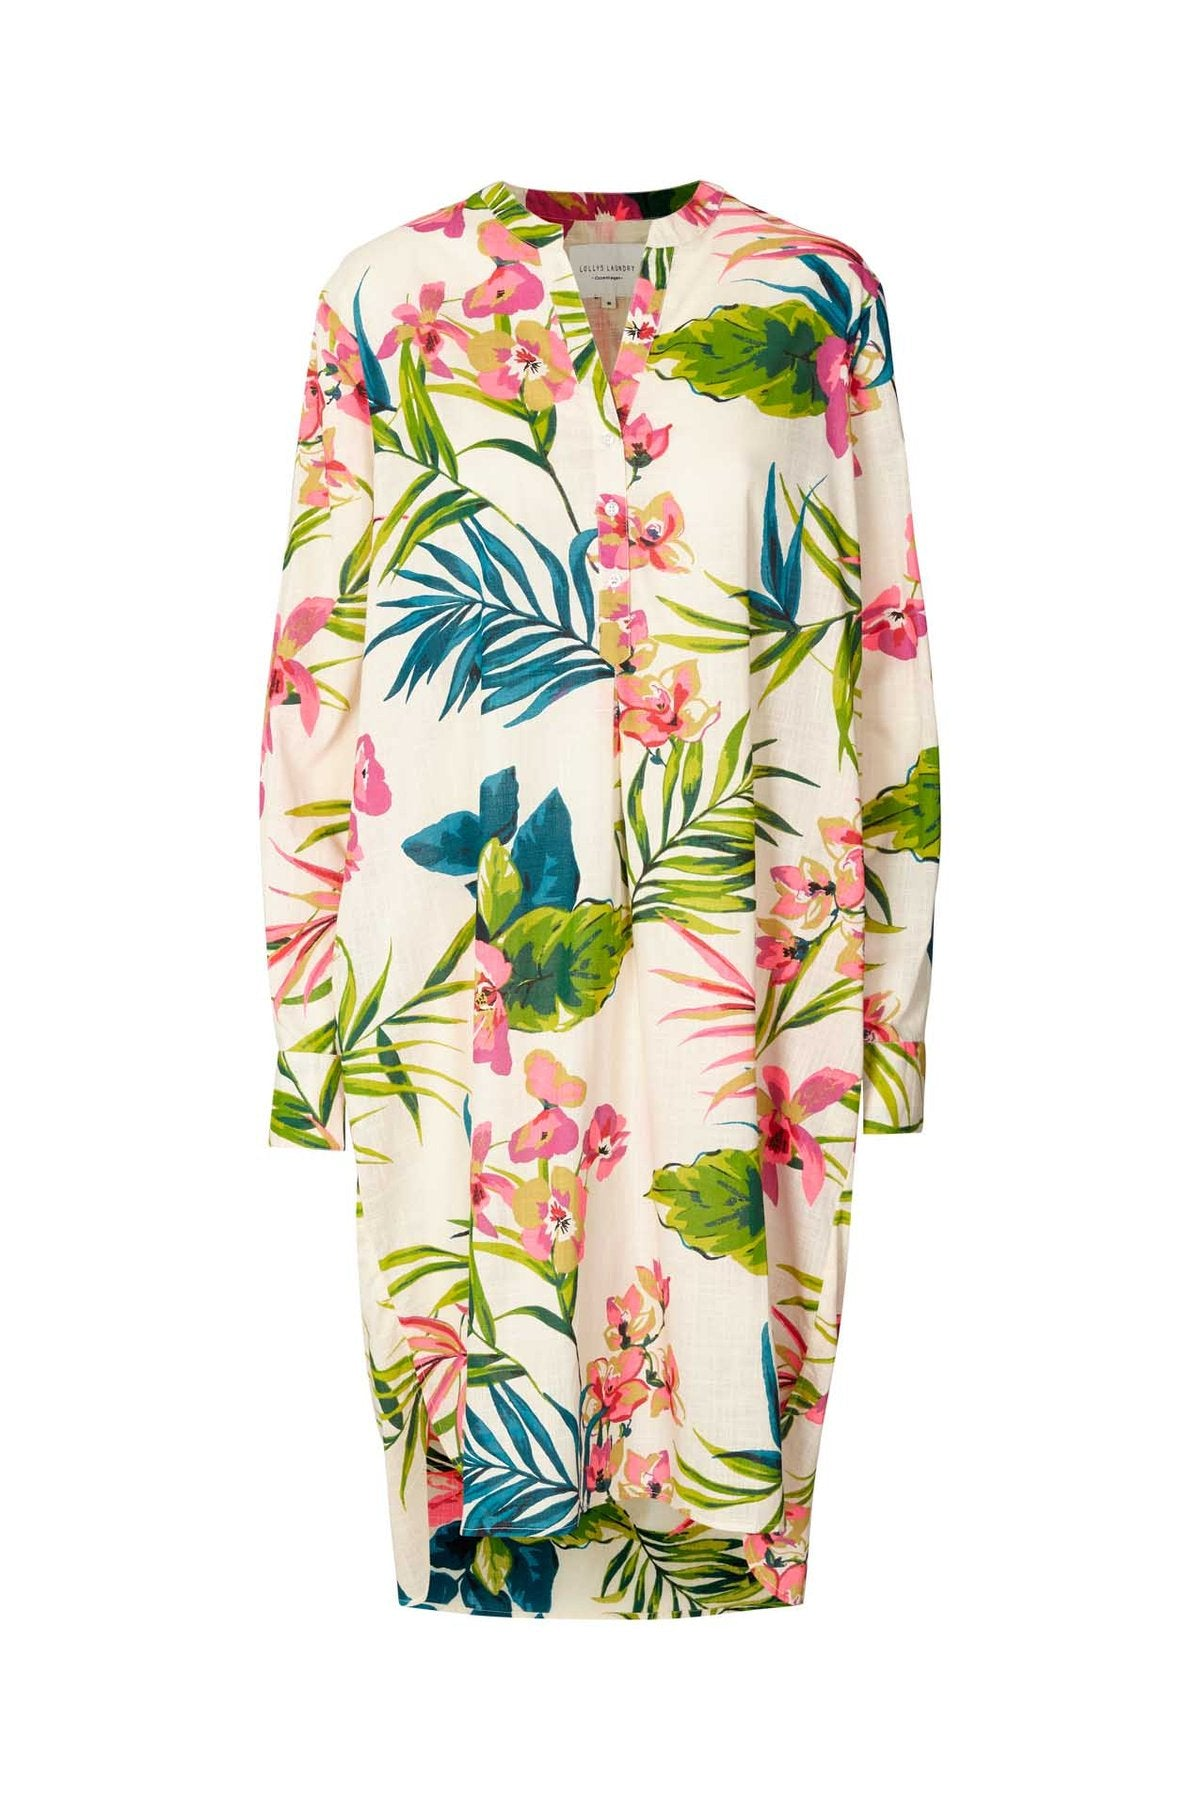 Lollys Laundry - flower print lucca shirt dress